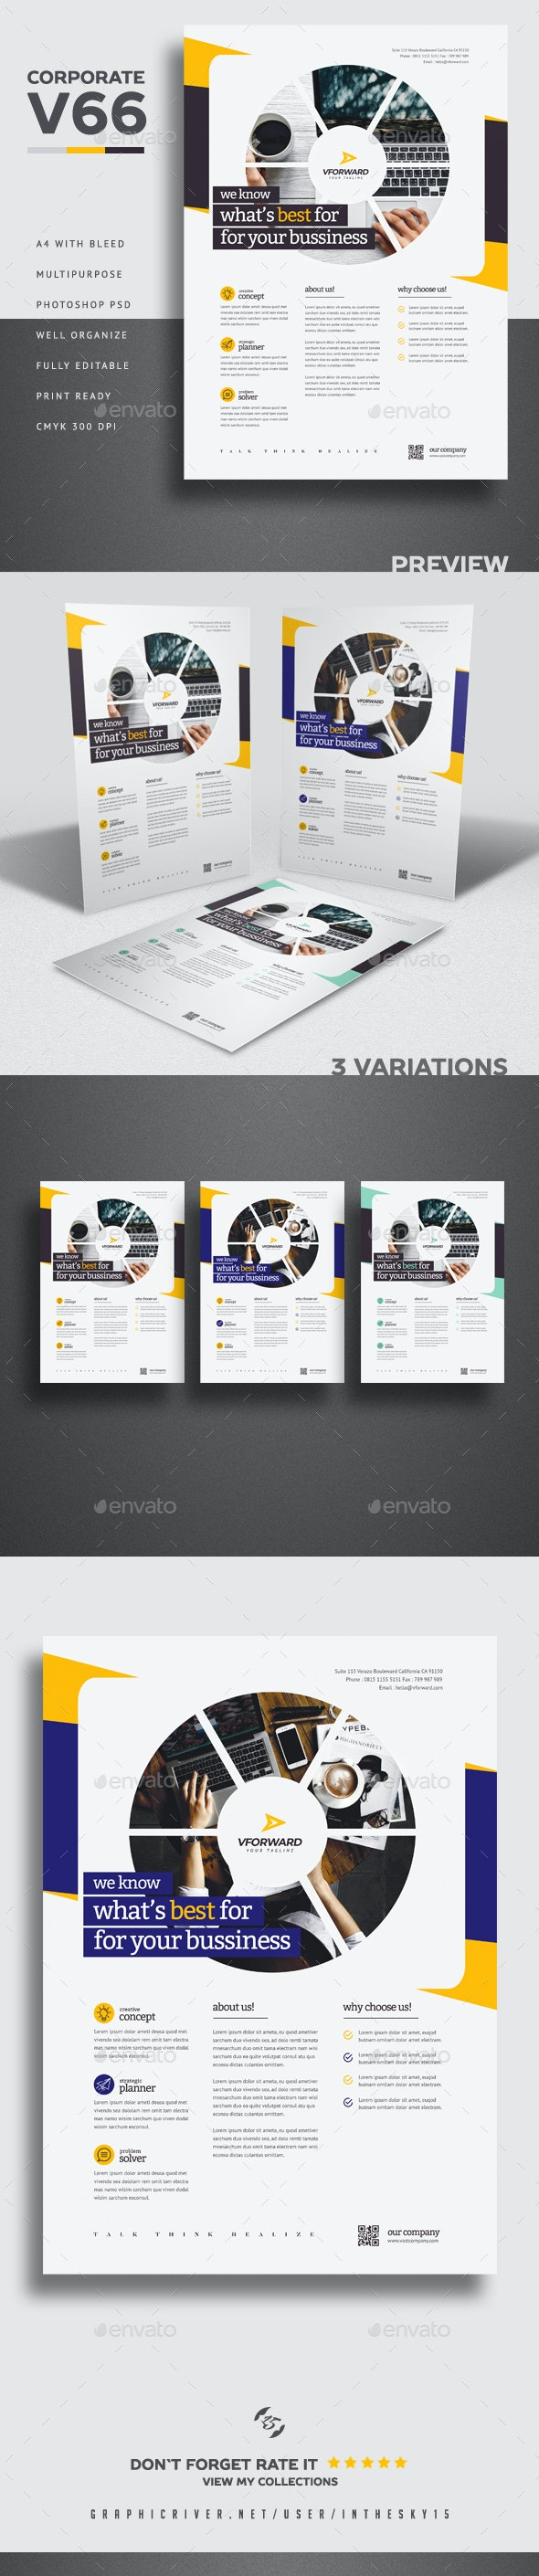 Corporate V66 Flyer - Corporate Flyers